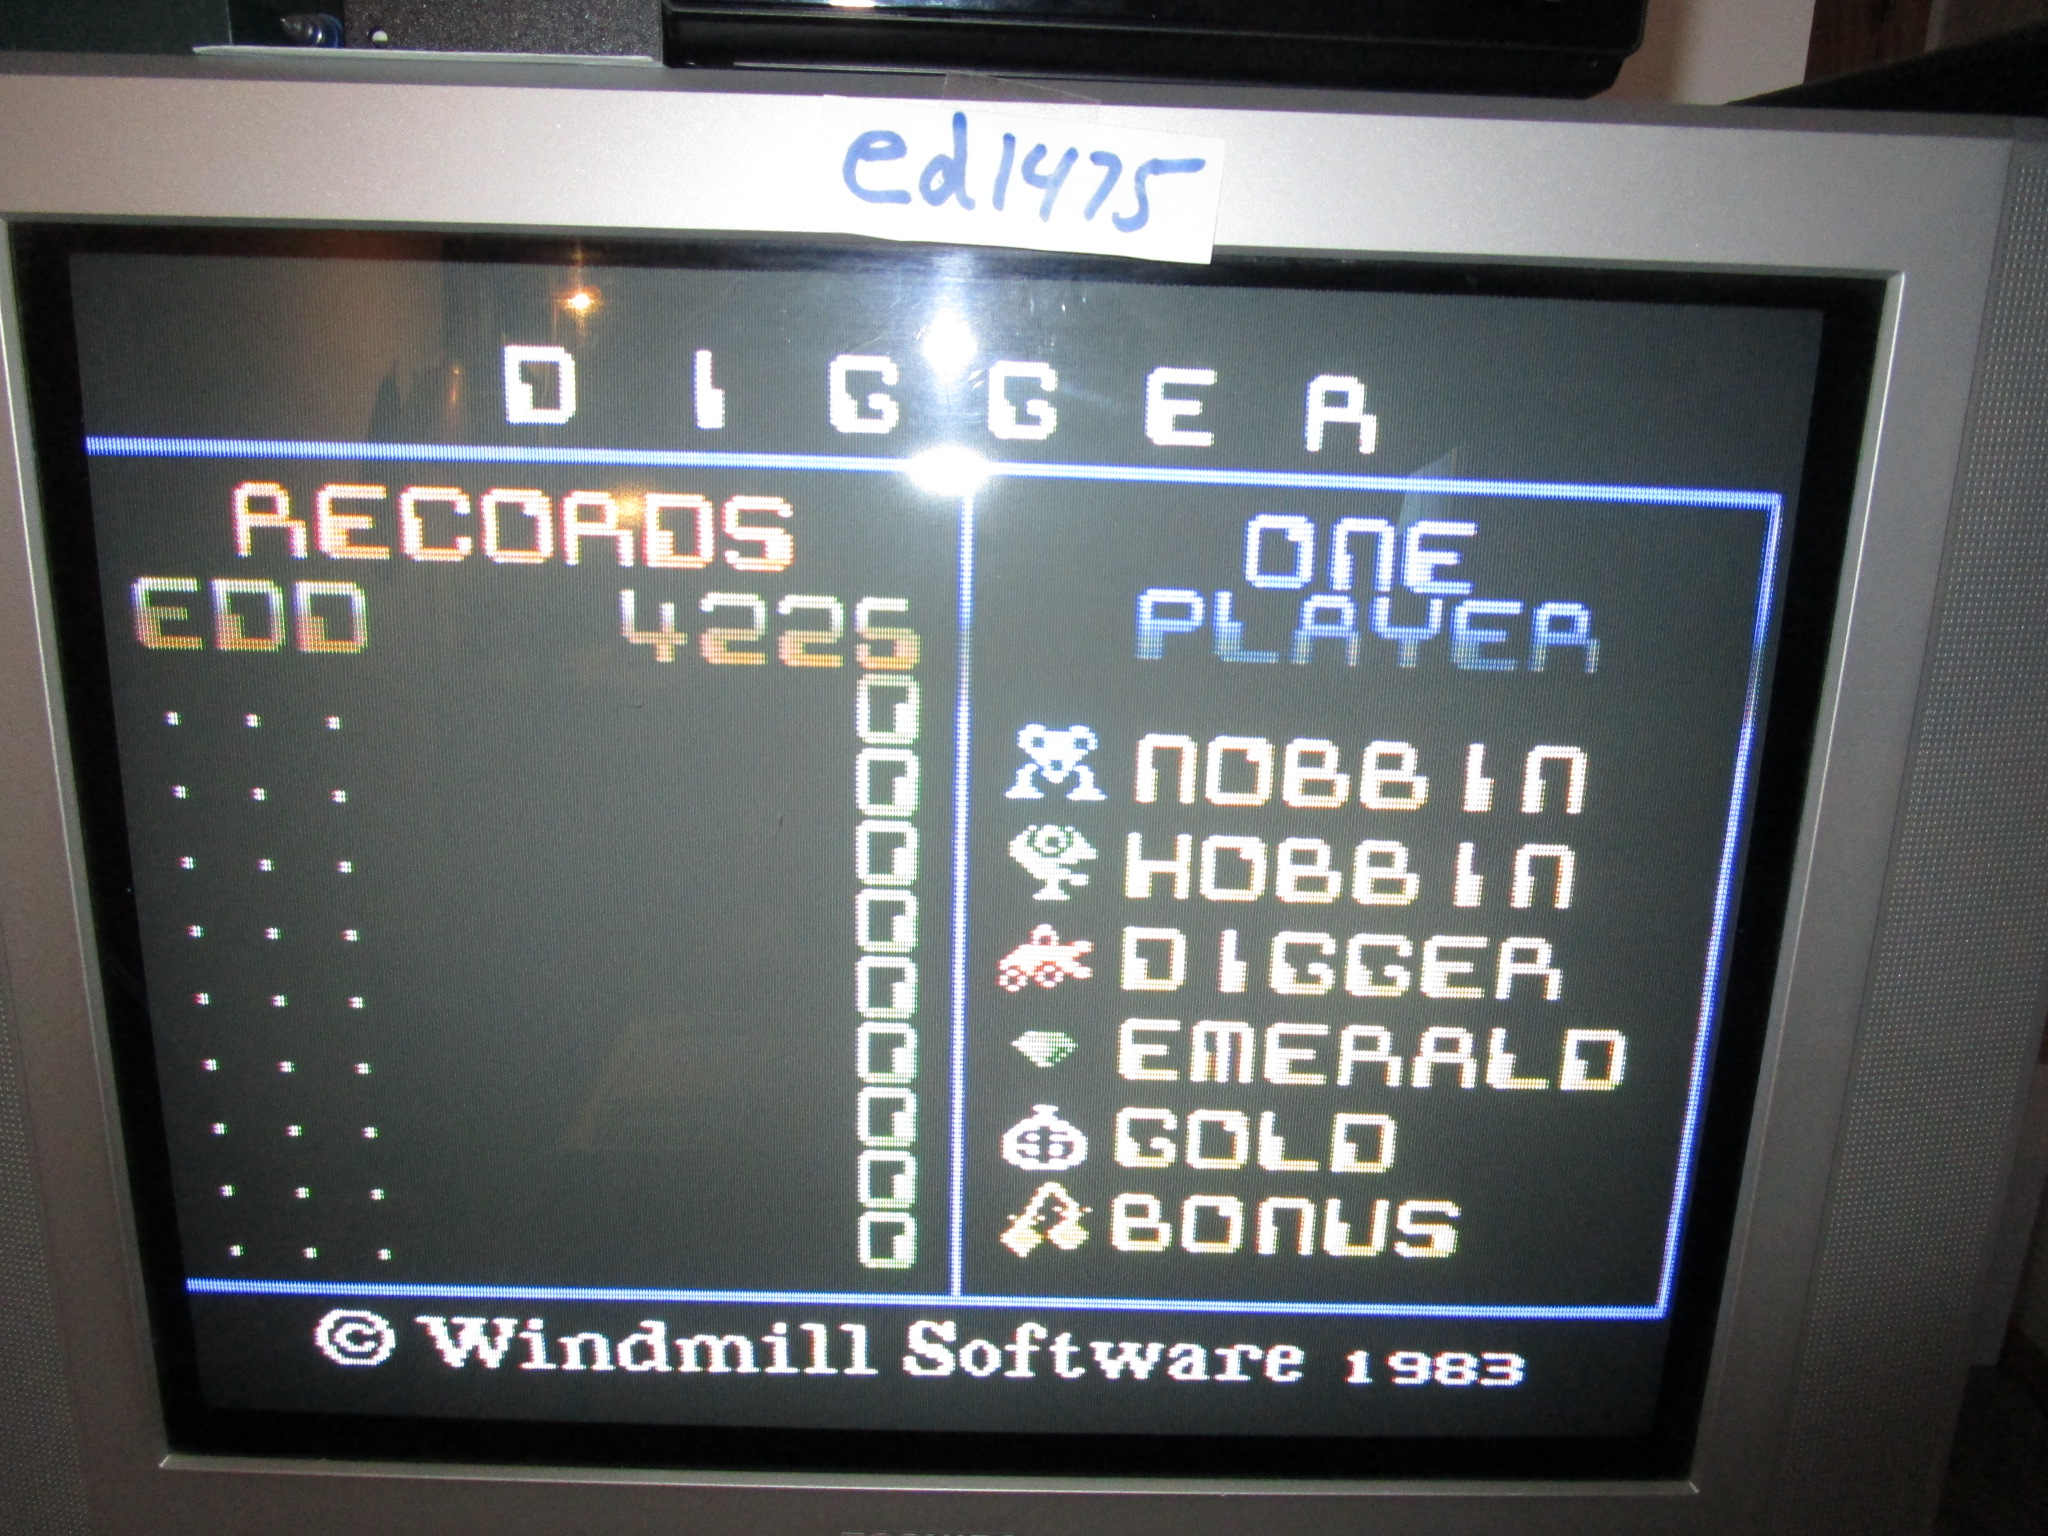 ed1475: Digger (Colecovision) 4,225 points on 2015-01-16 13:06:18